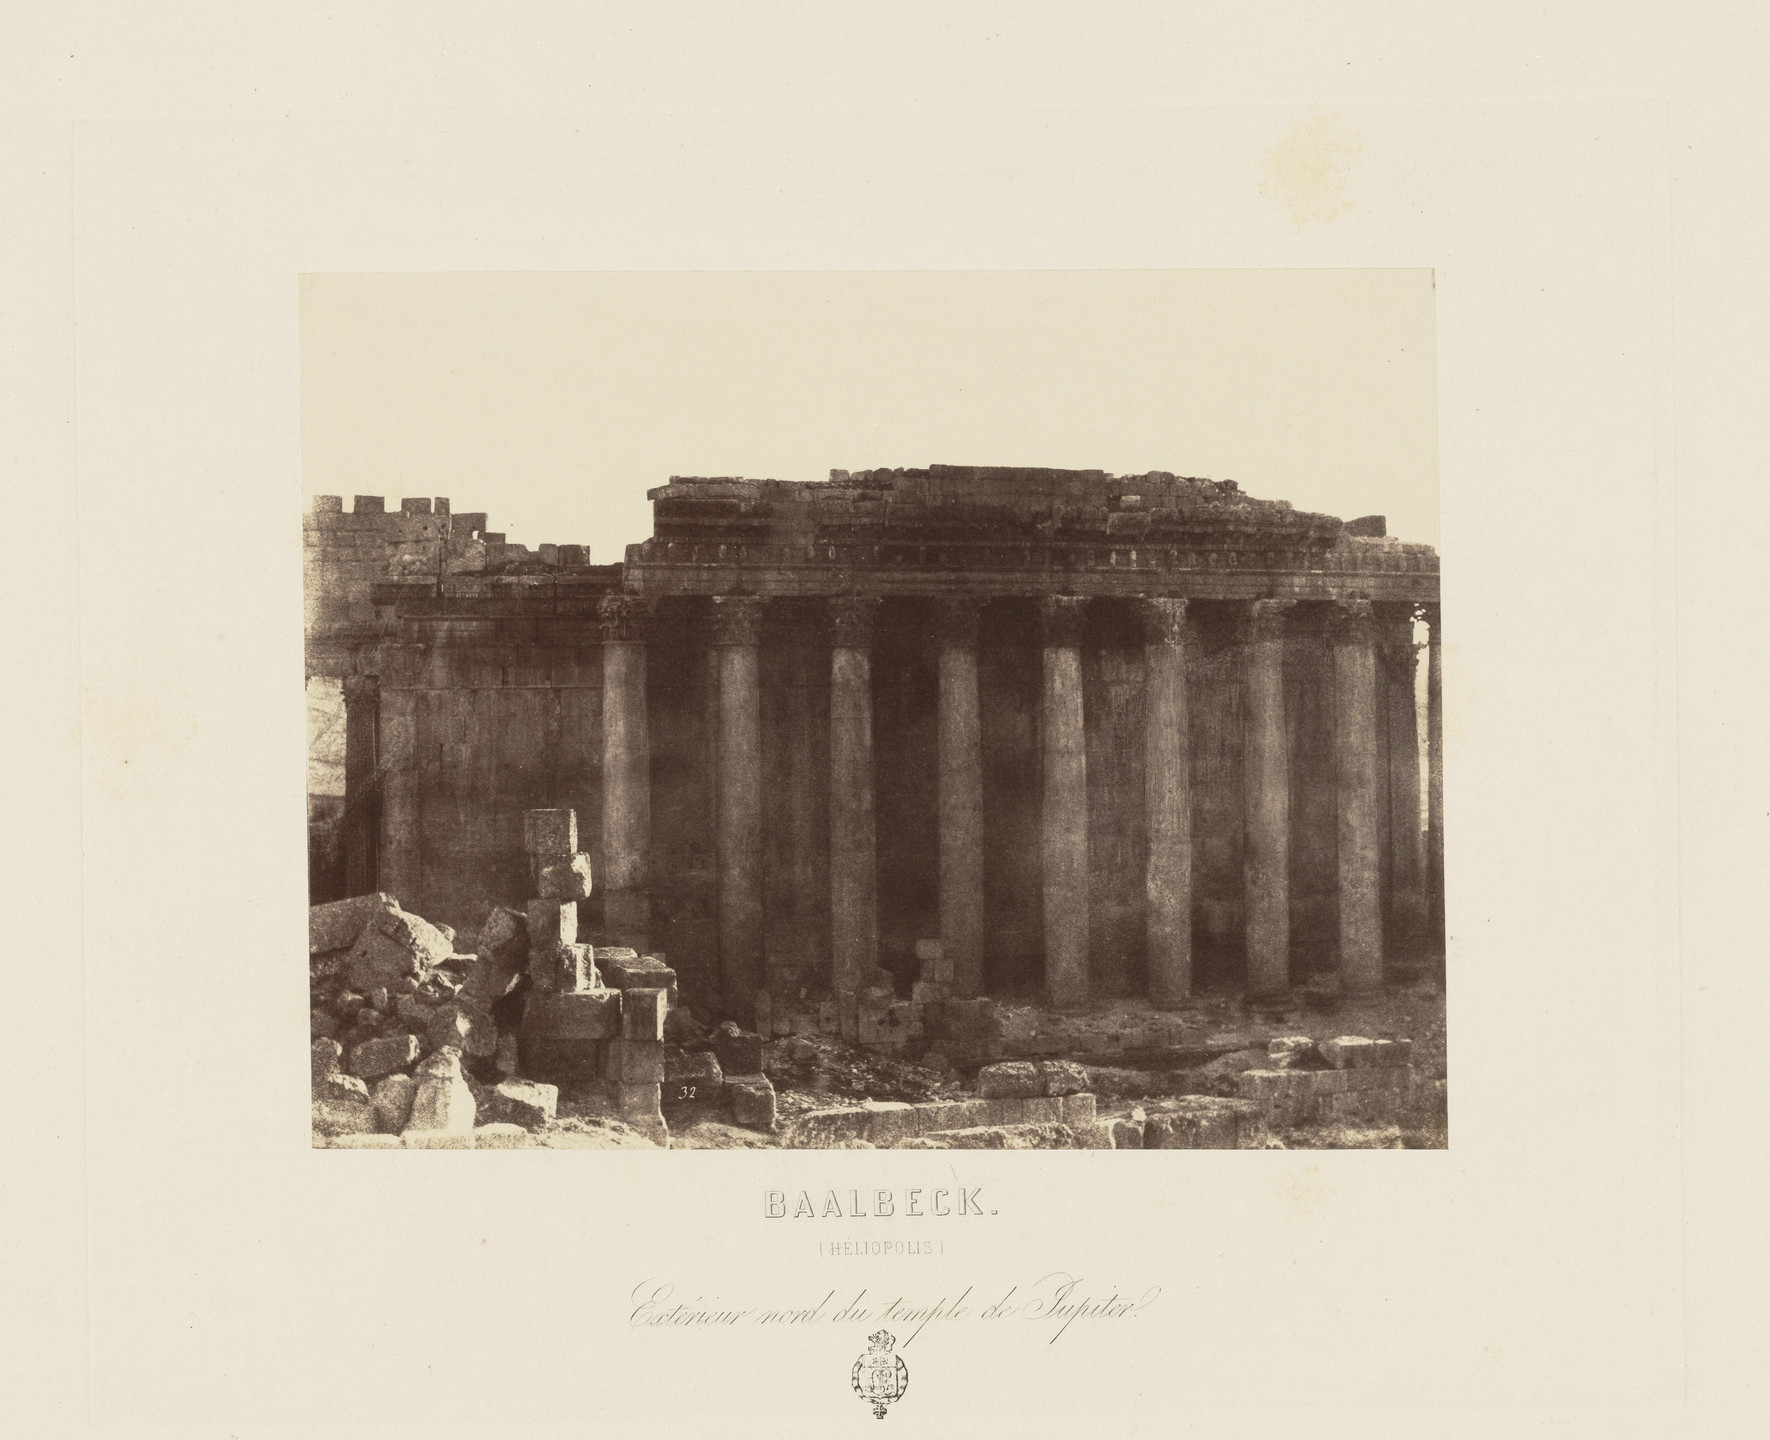 Louis De Clercq. Temple of Jupiter (Exterior Northern View), Baalbek from Voyage en Orient (Paris. 1860). 1859-60